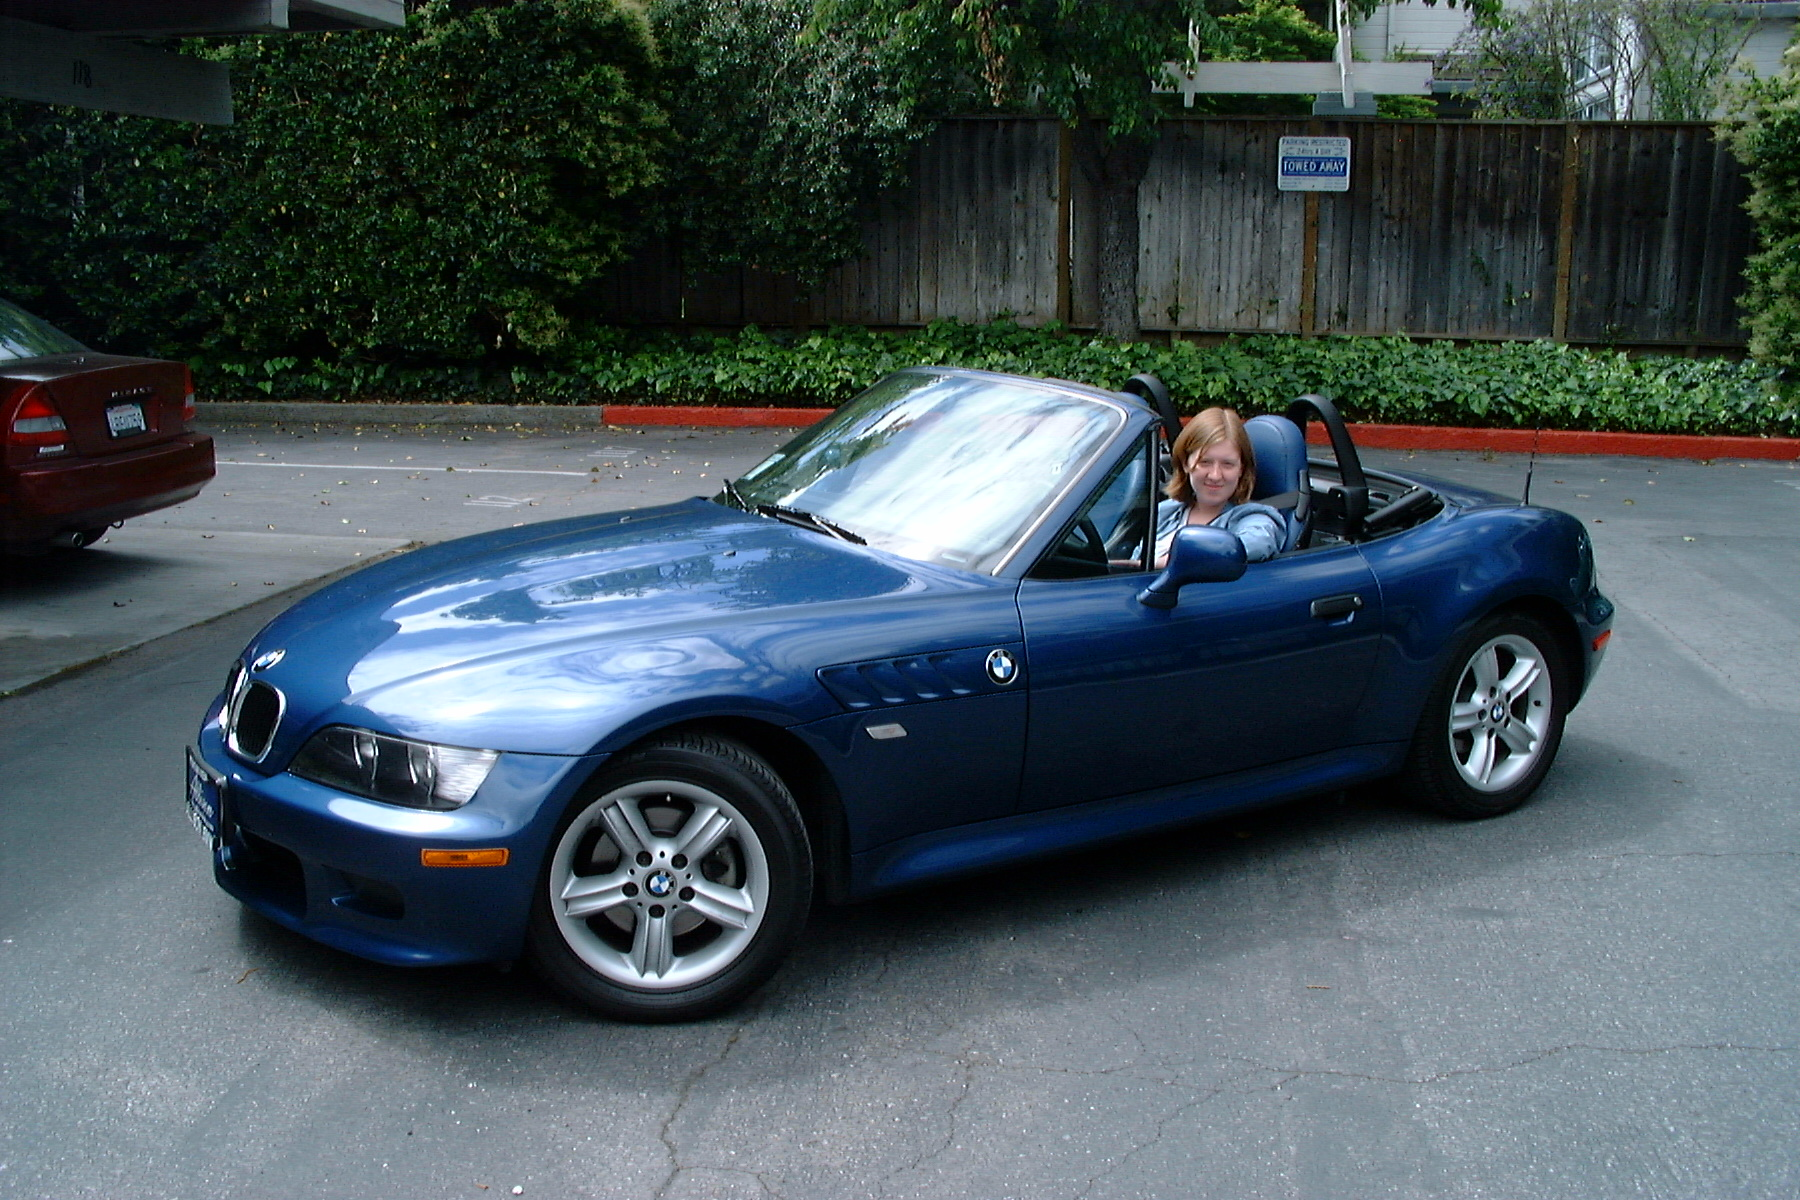 2000 BMW Z3 2.5L 6cyl Warrantied to May 2007 & Below Market Value!